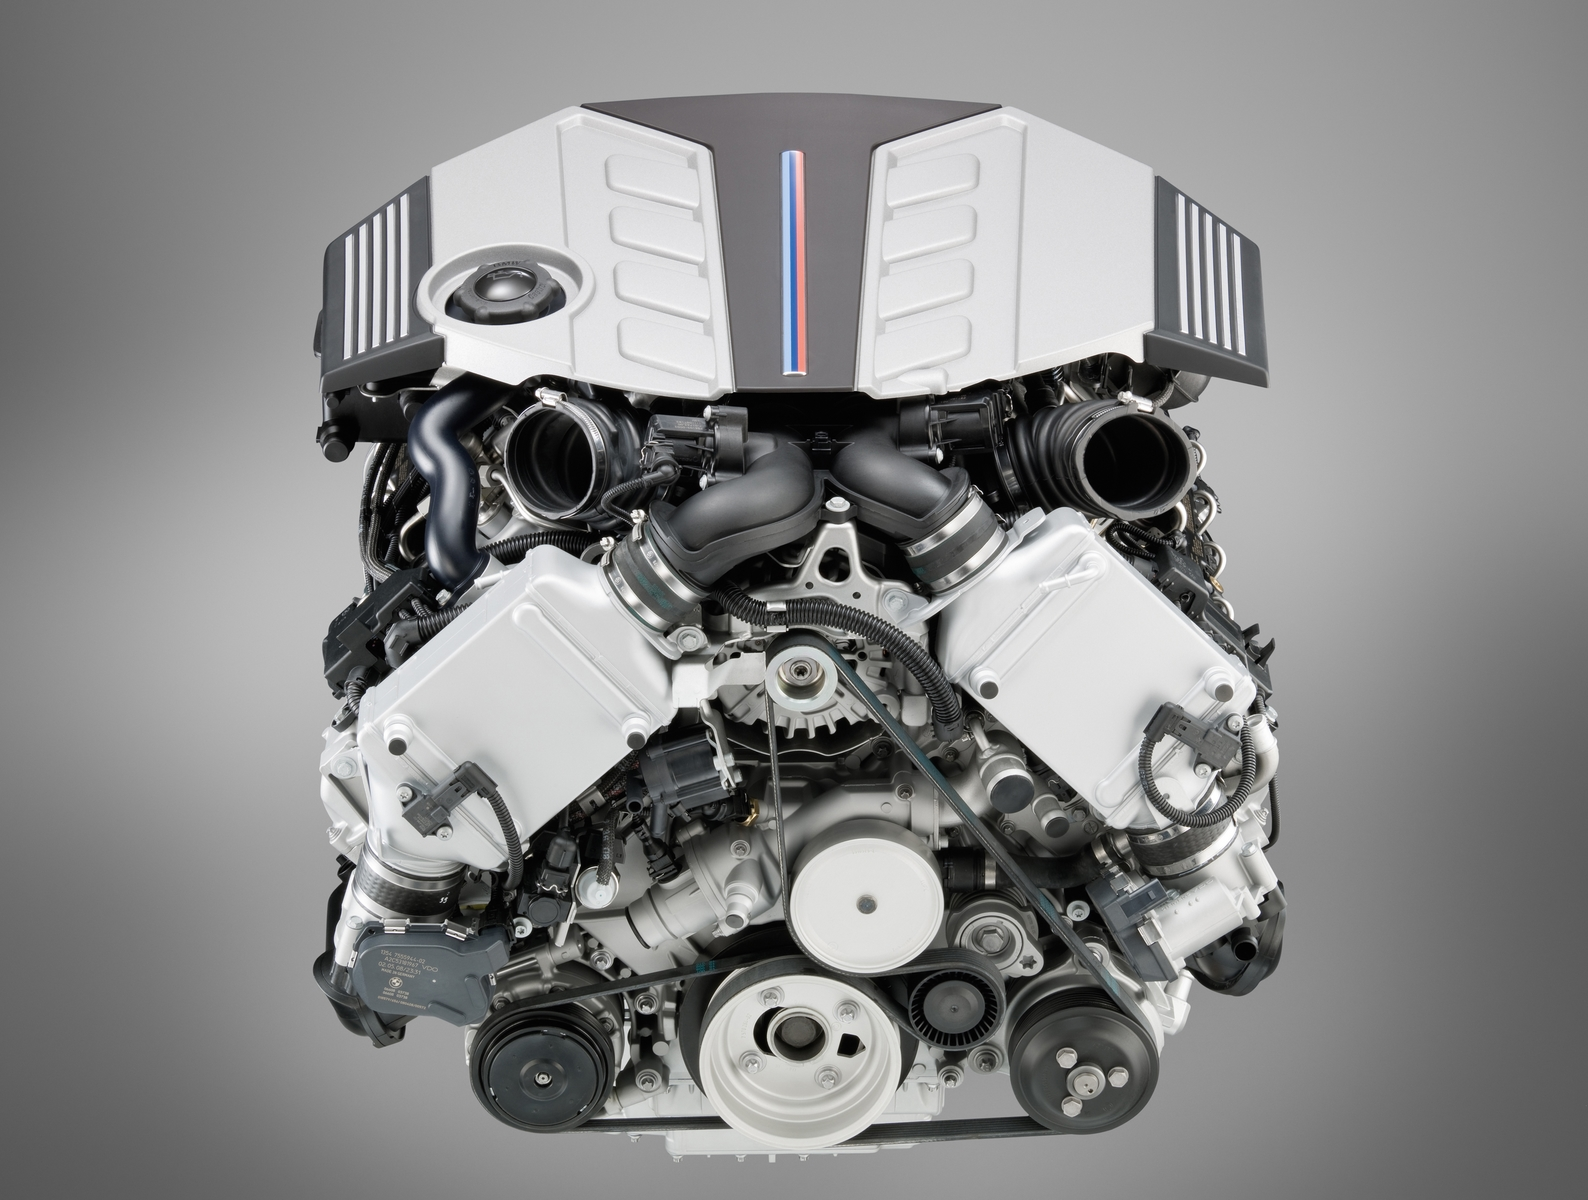 Production And Testing Of The V8 4 4 Liter Twin Scroll From Bmw X5m